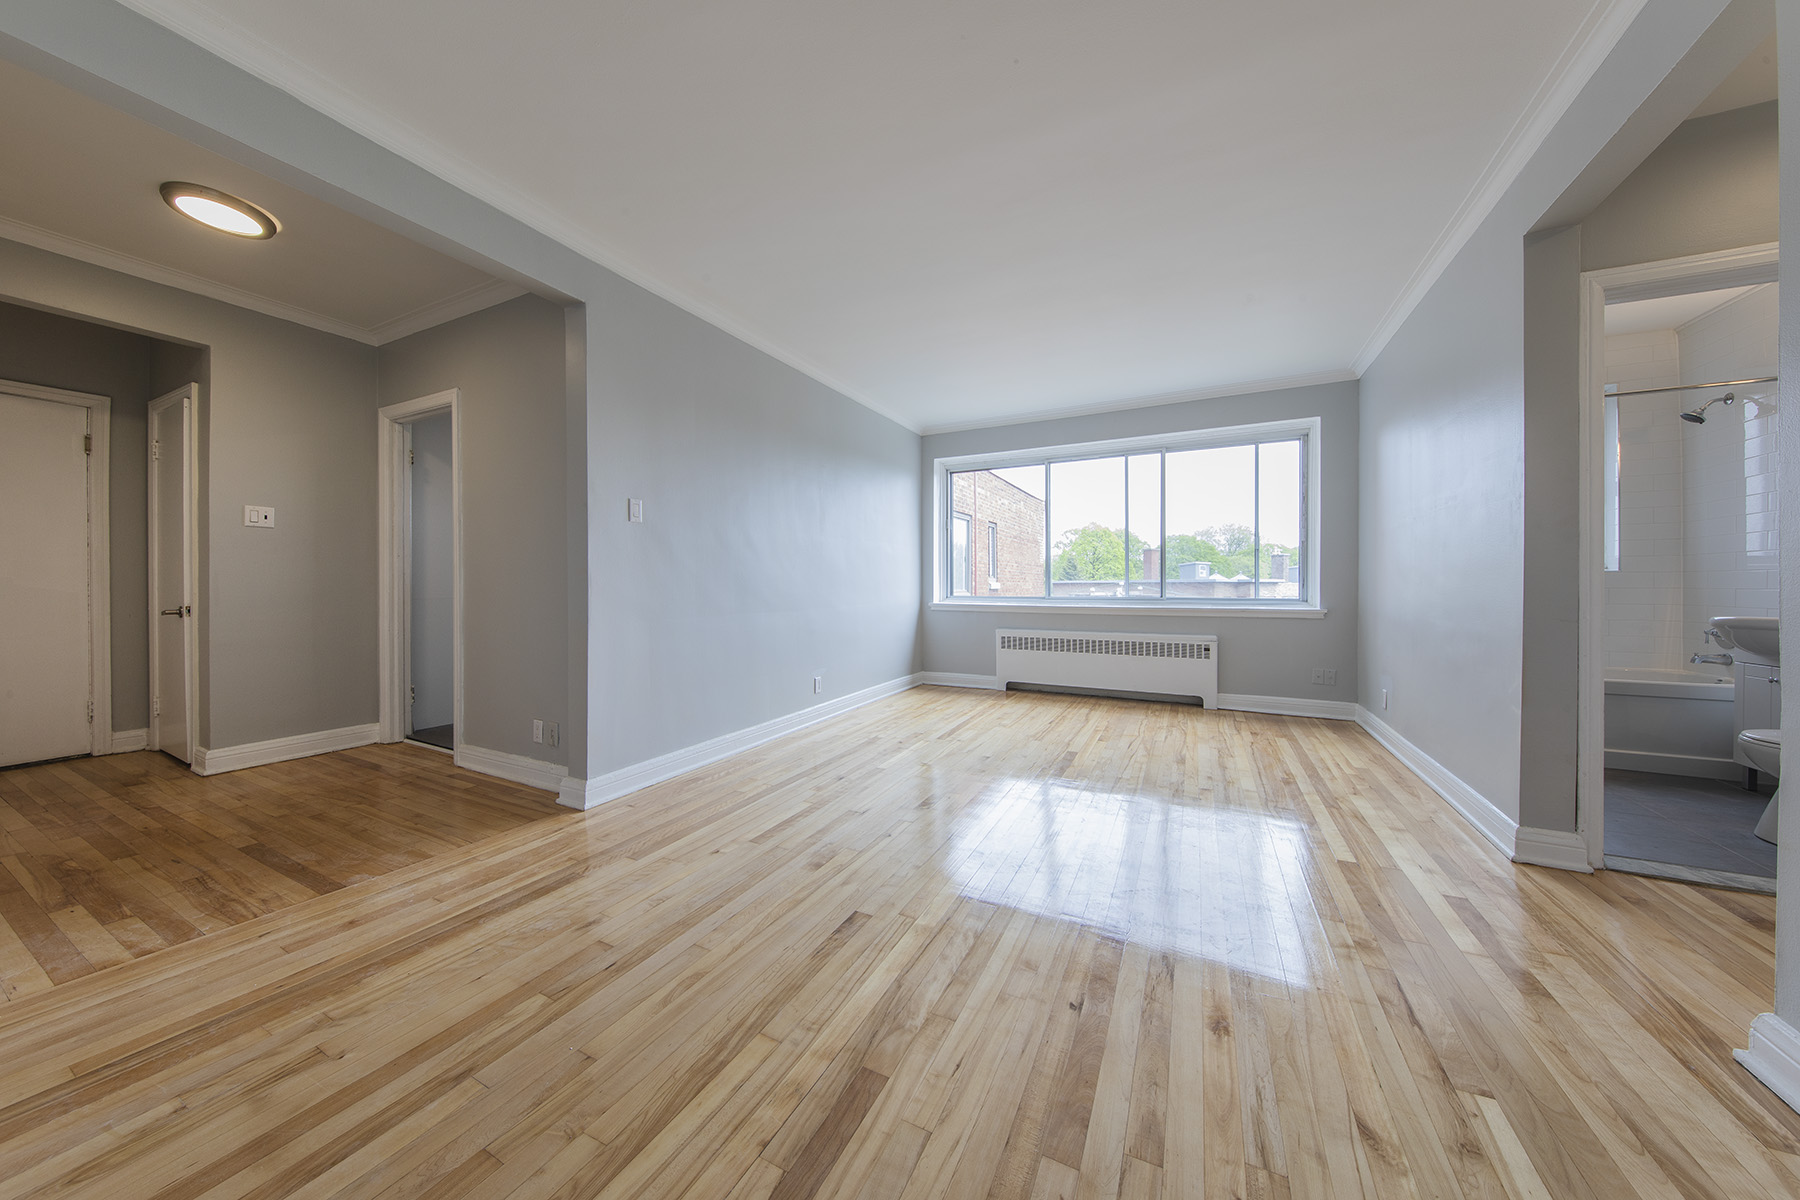 Studio / Bachelor Apartments for rent in Notre-Dame-de-Grace at 6325 Somerled - Photo 03 - RentQuebecApartments – L401539